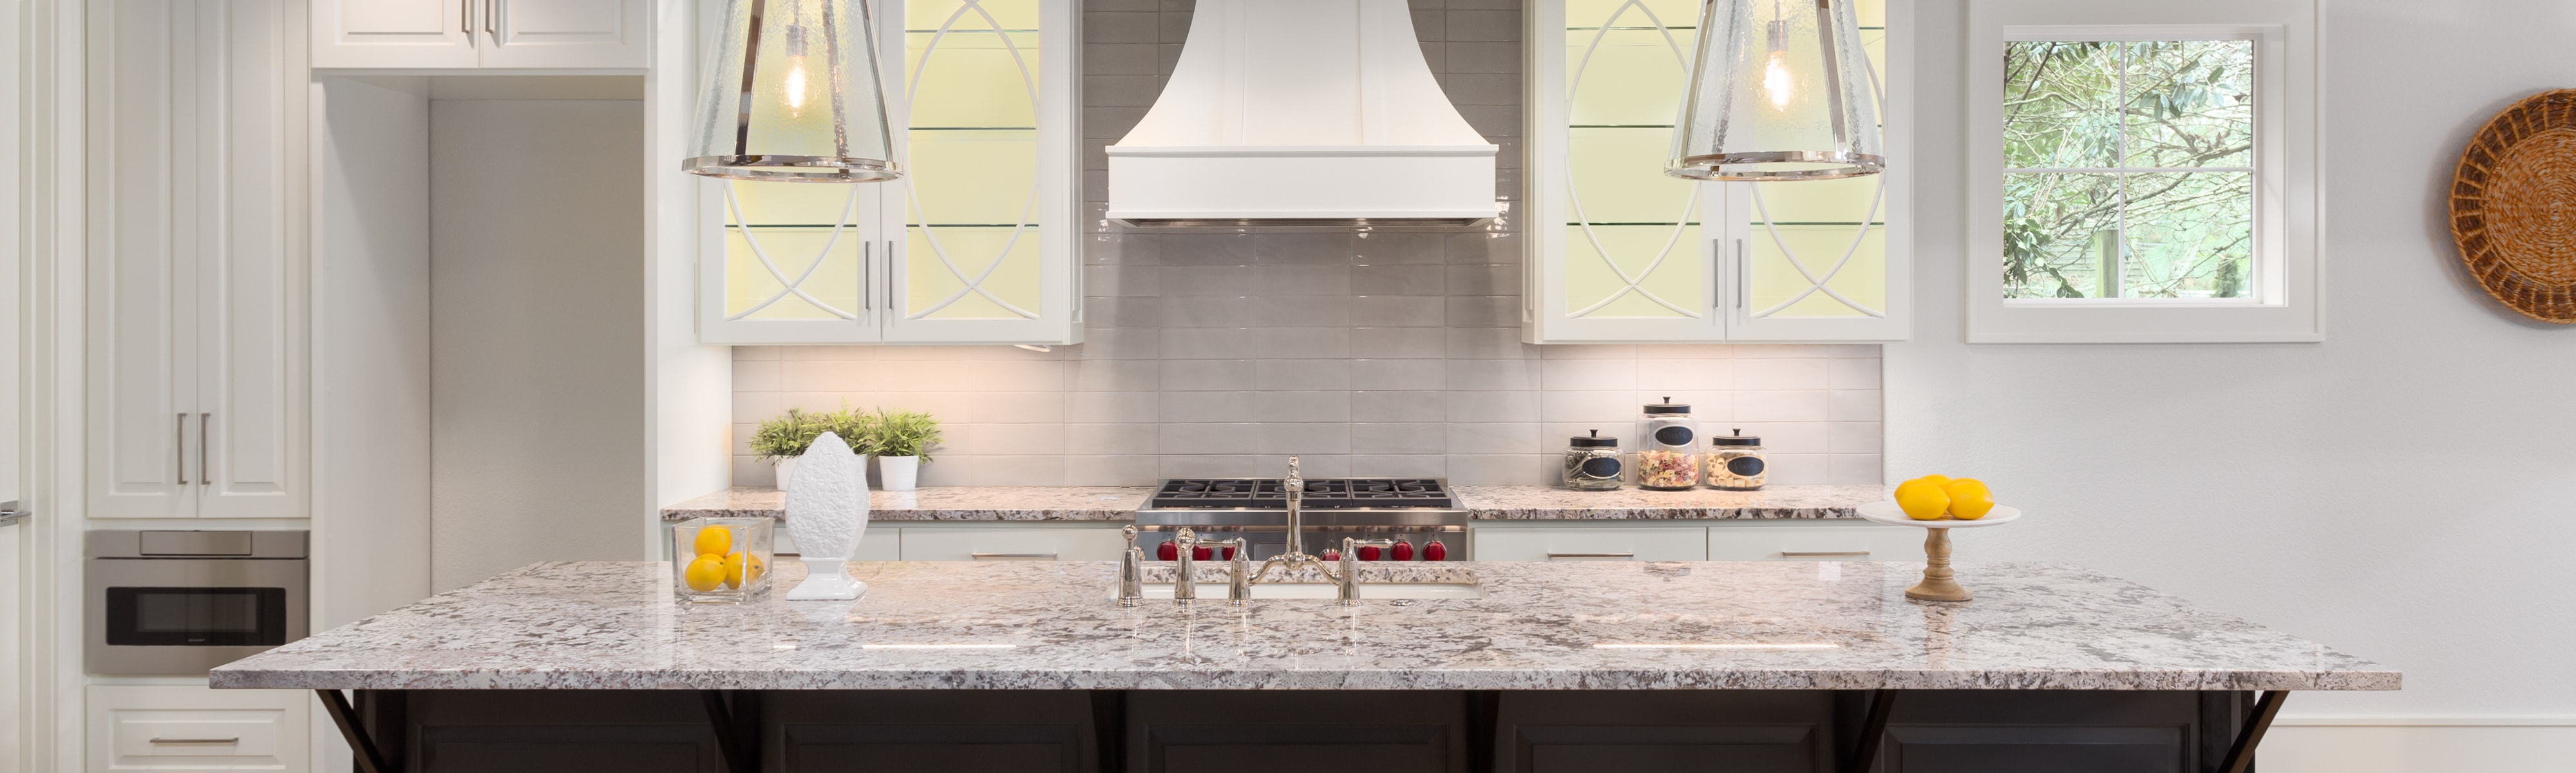 Upscale kitchen with well ventilated air.